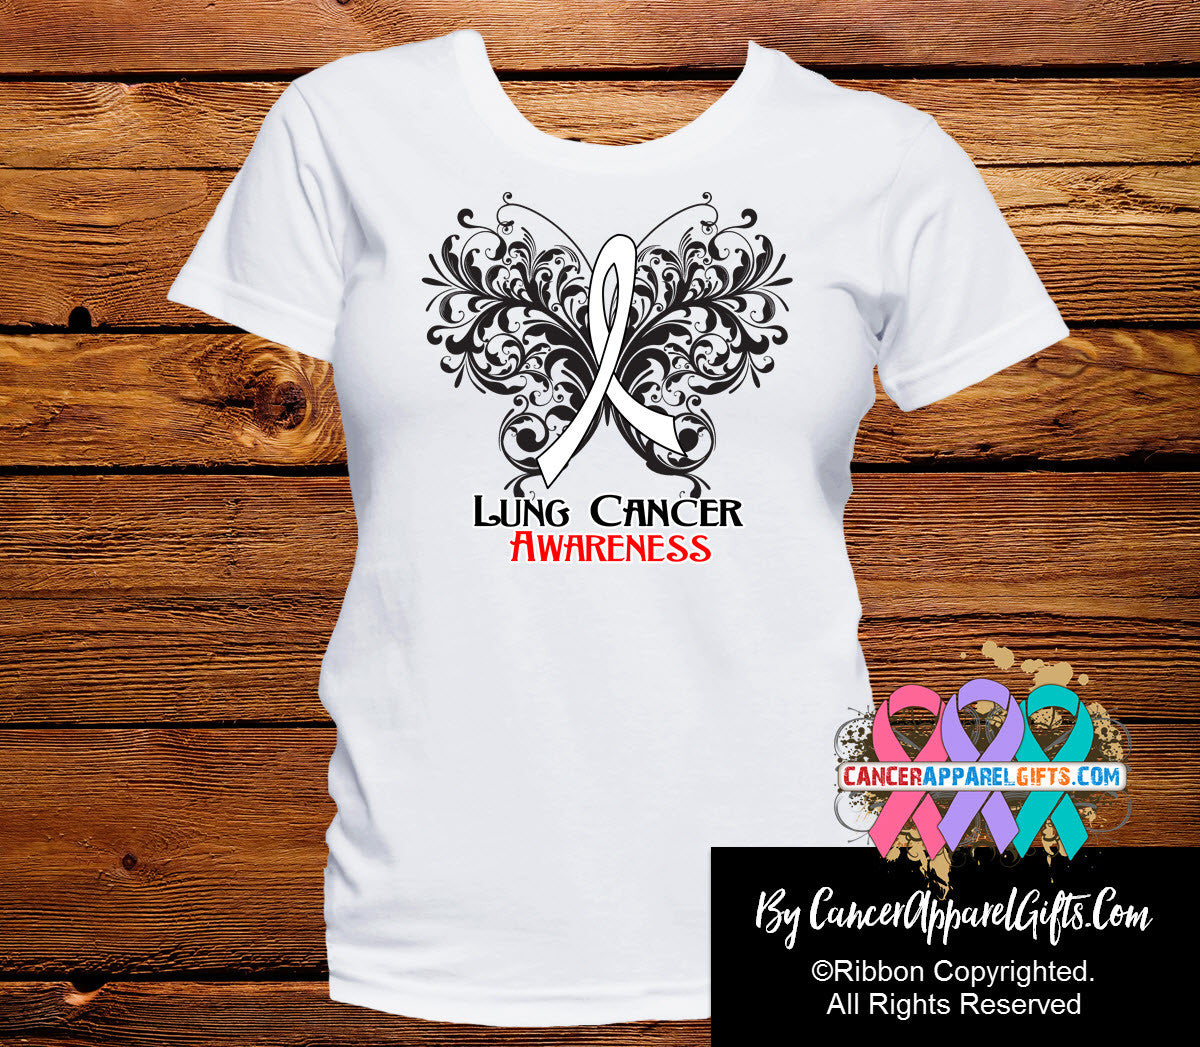 Lung Cancer Butterfly Ribbon Shirts - Cancer Apparel and Gifts